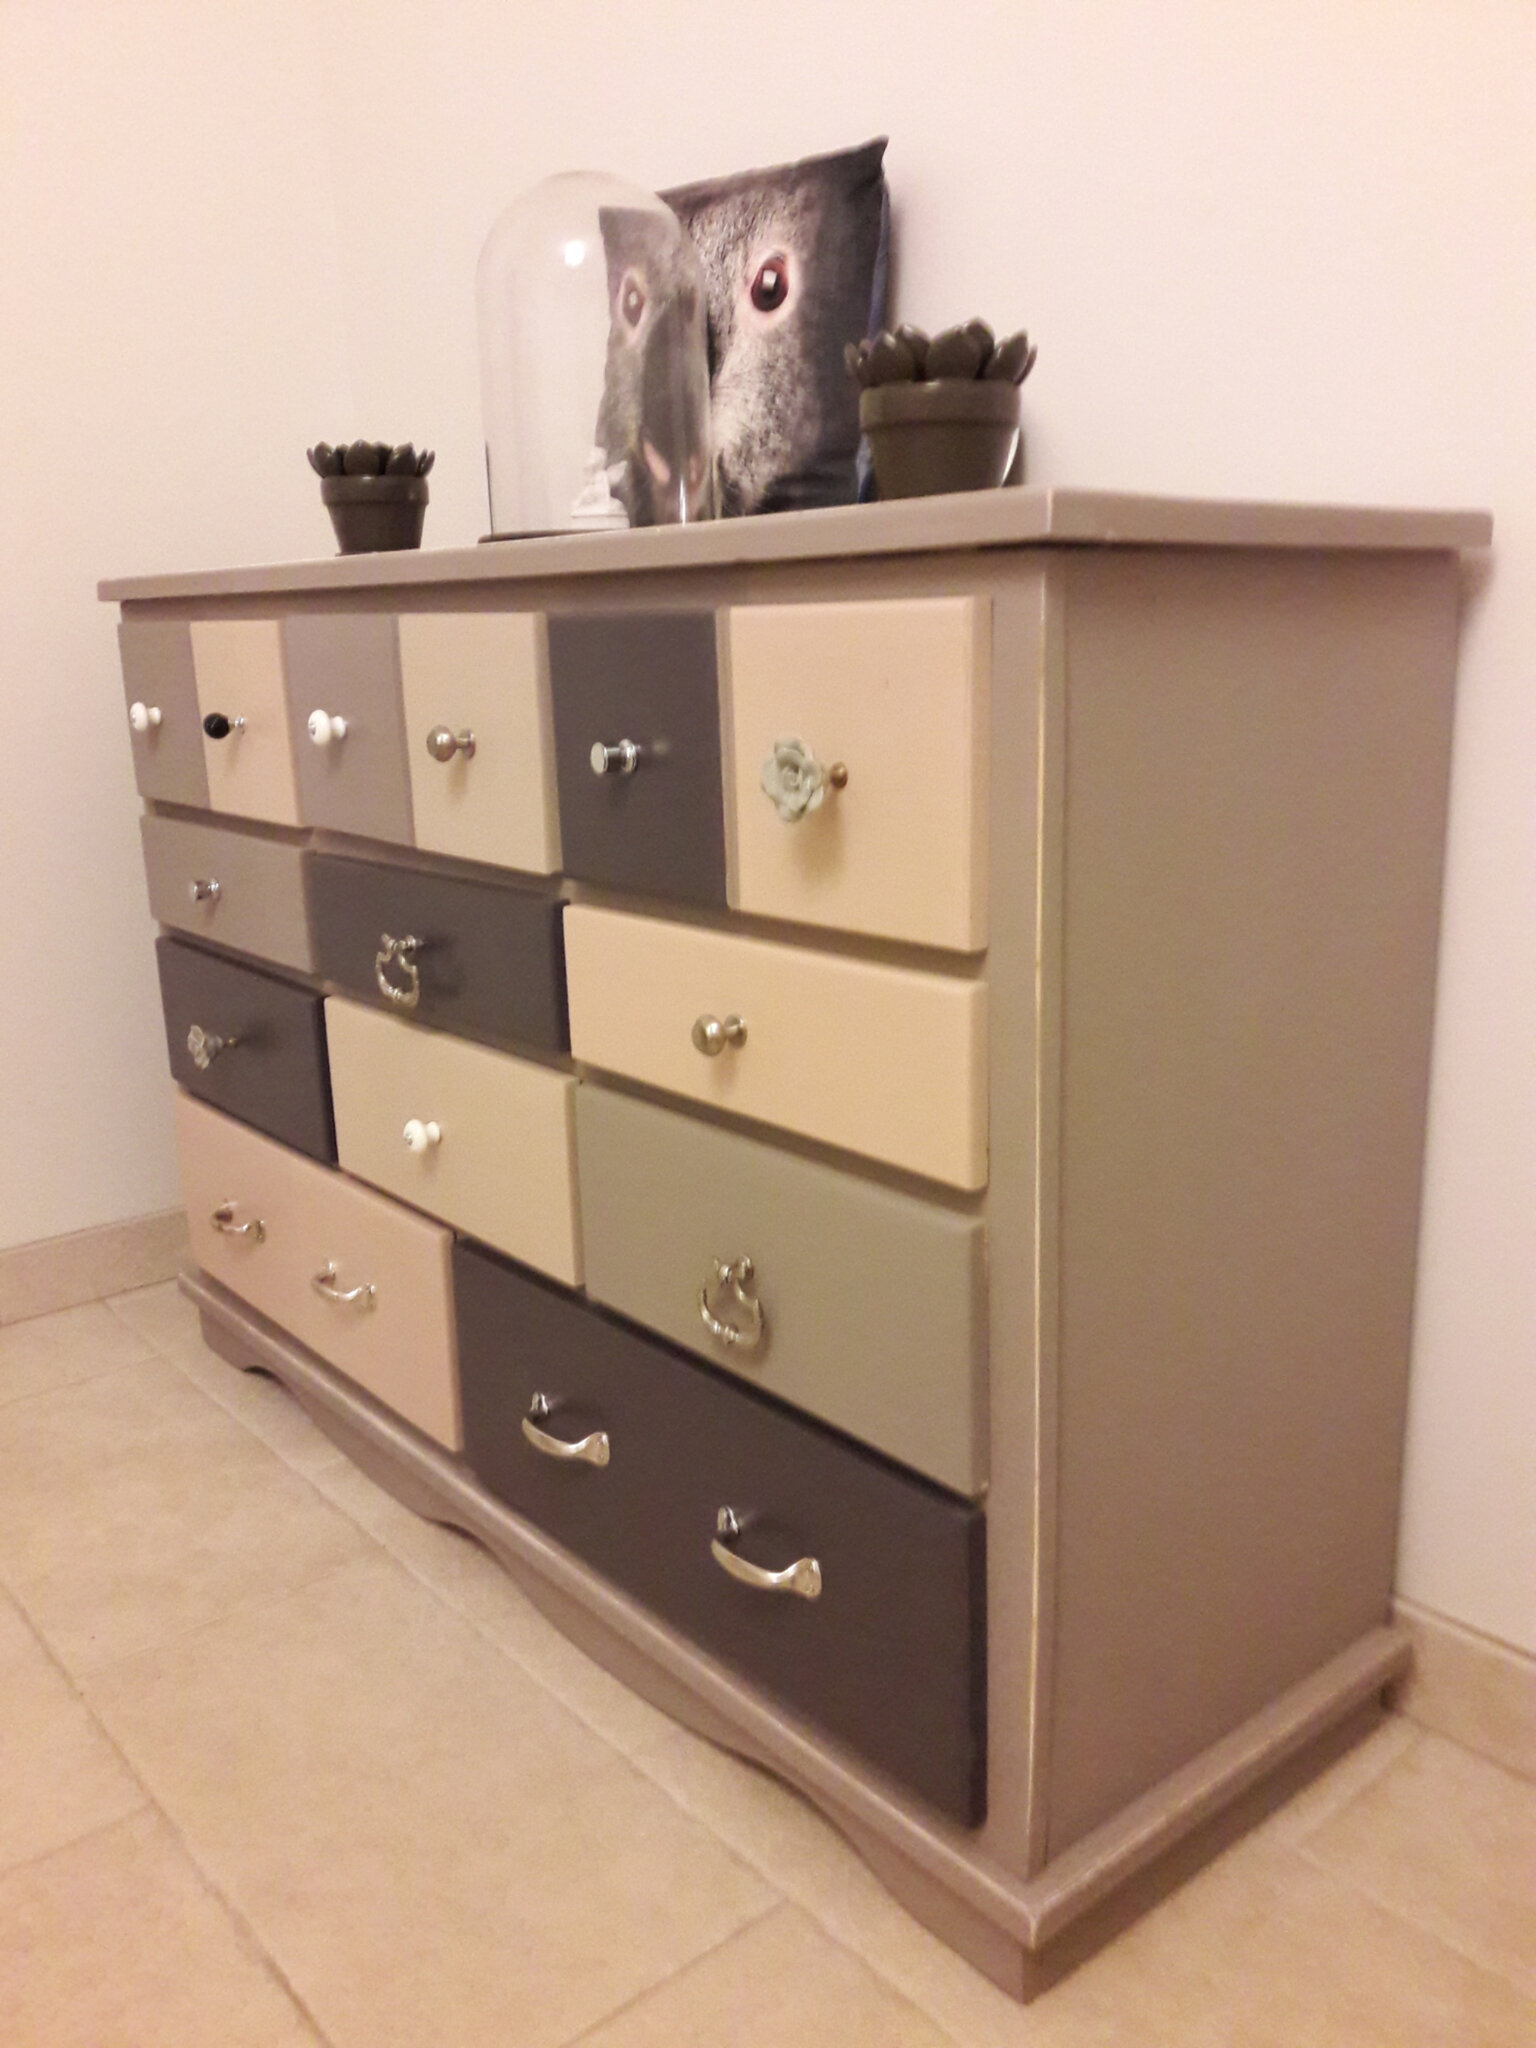 Relooker Vieille Armoire Relooker Une Commode Relooker Une Commode Une Bonne Astuce D Co